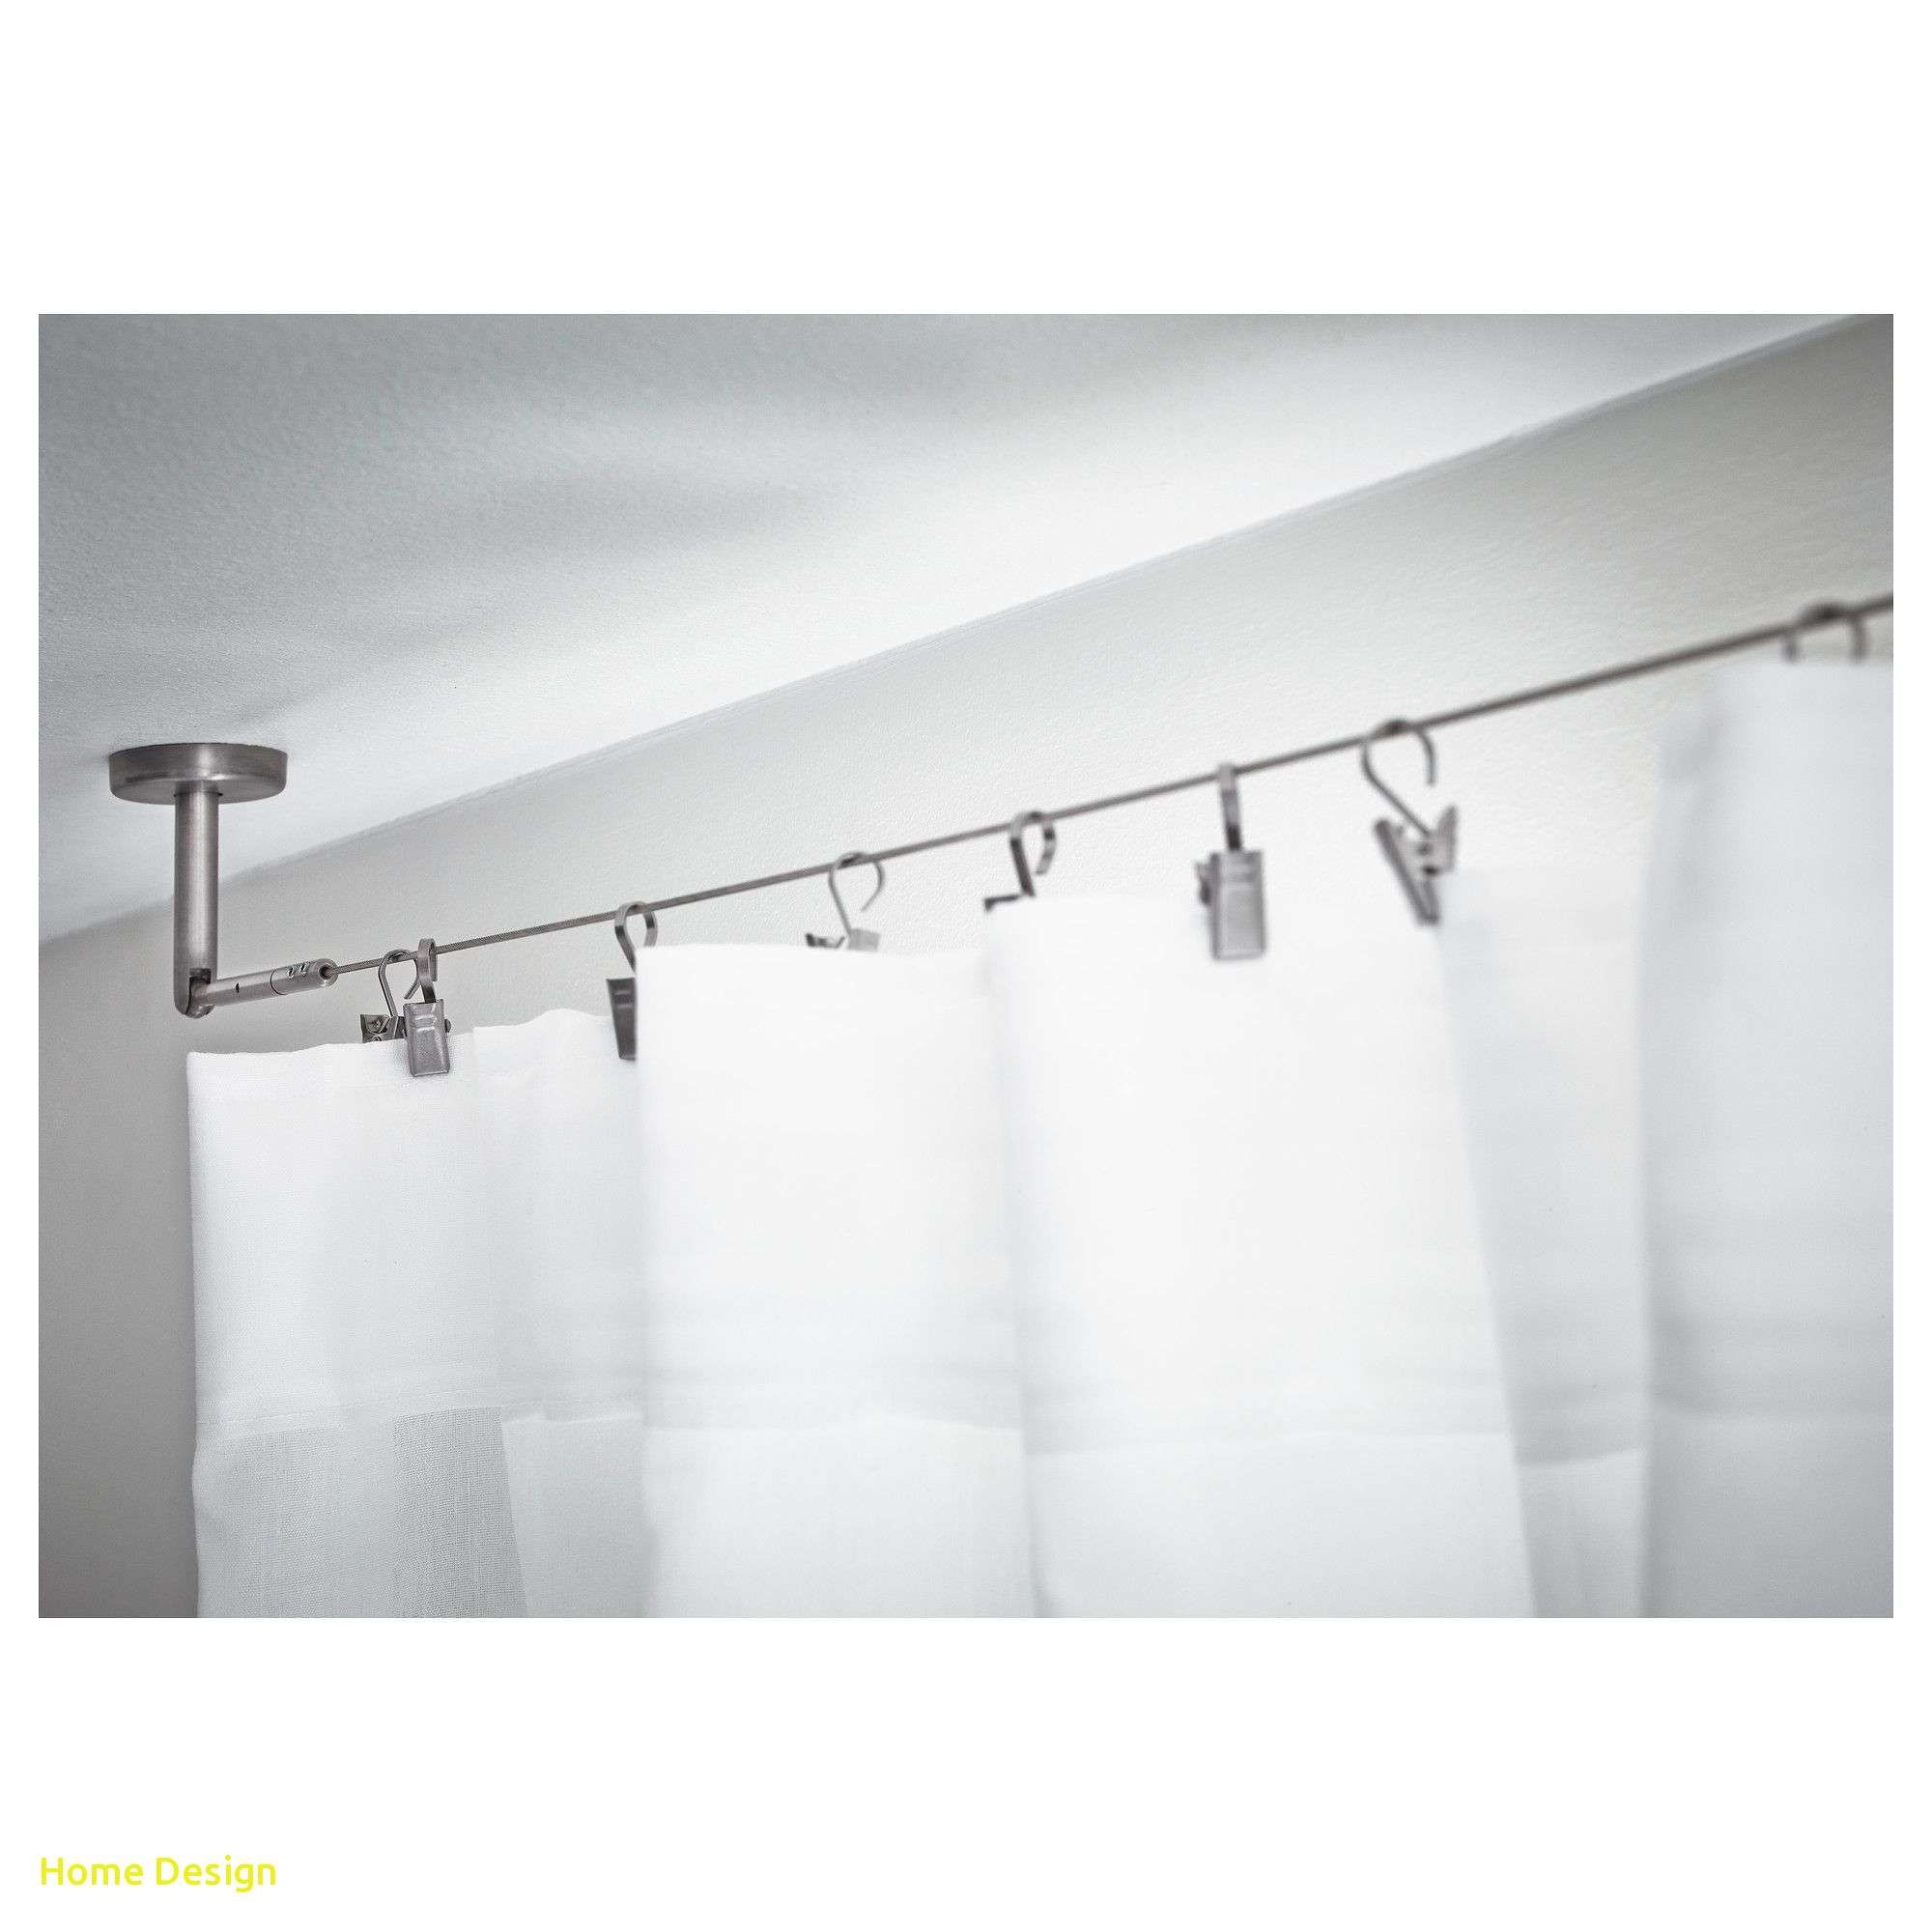 Best Of Hanging Curtains From Ceiling